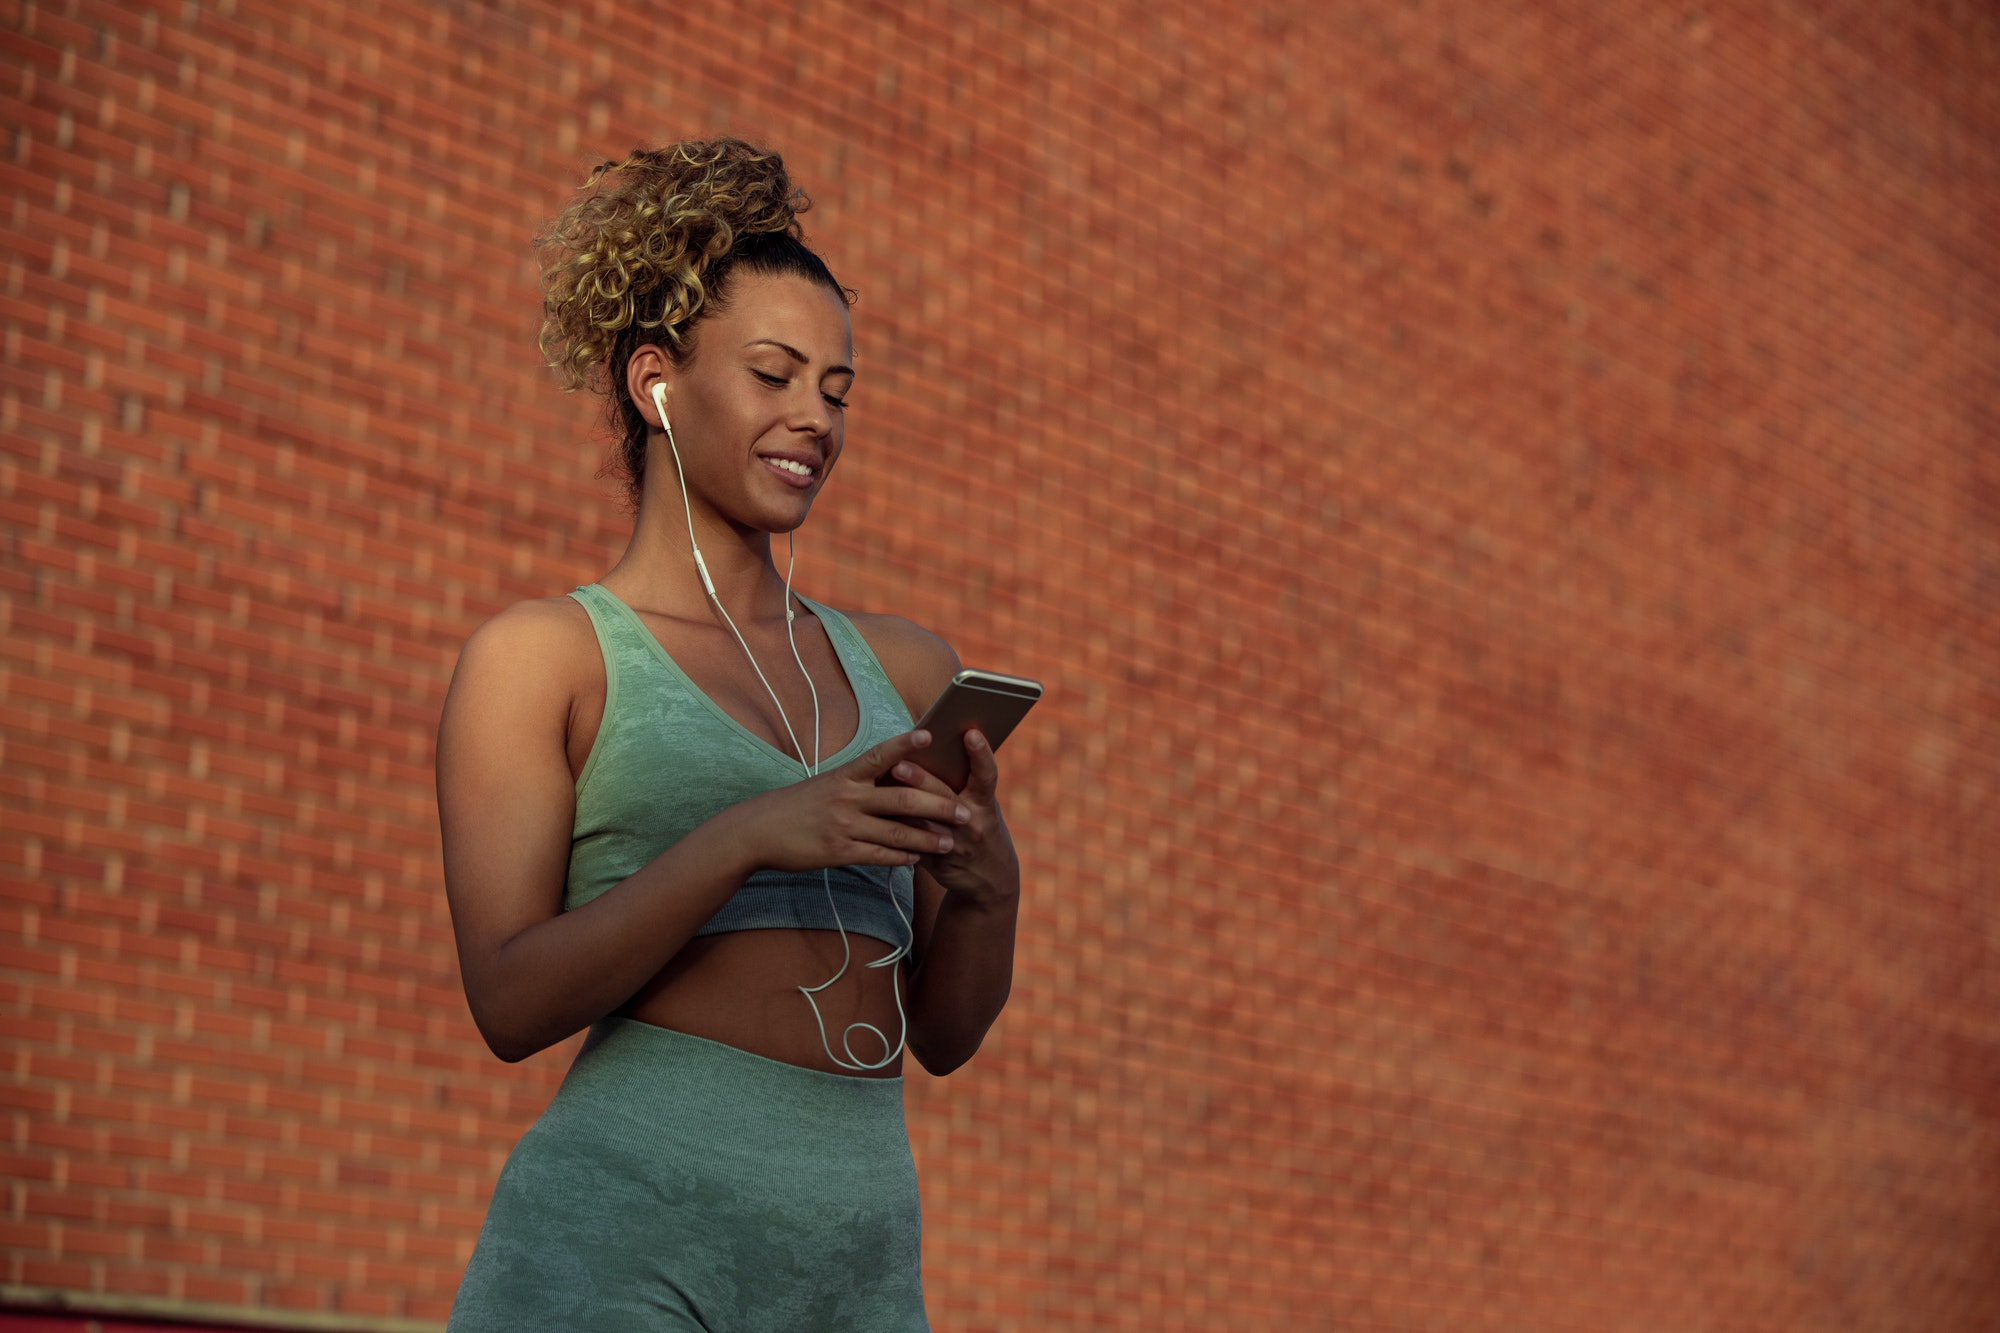 Reaching her fitness goals with the gift of mobile apps